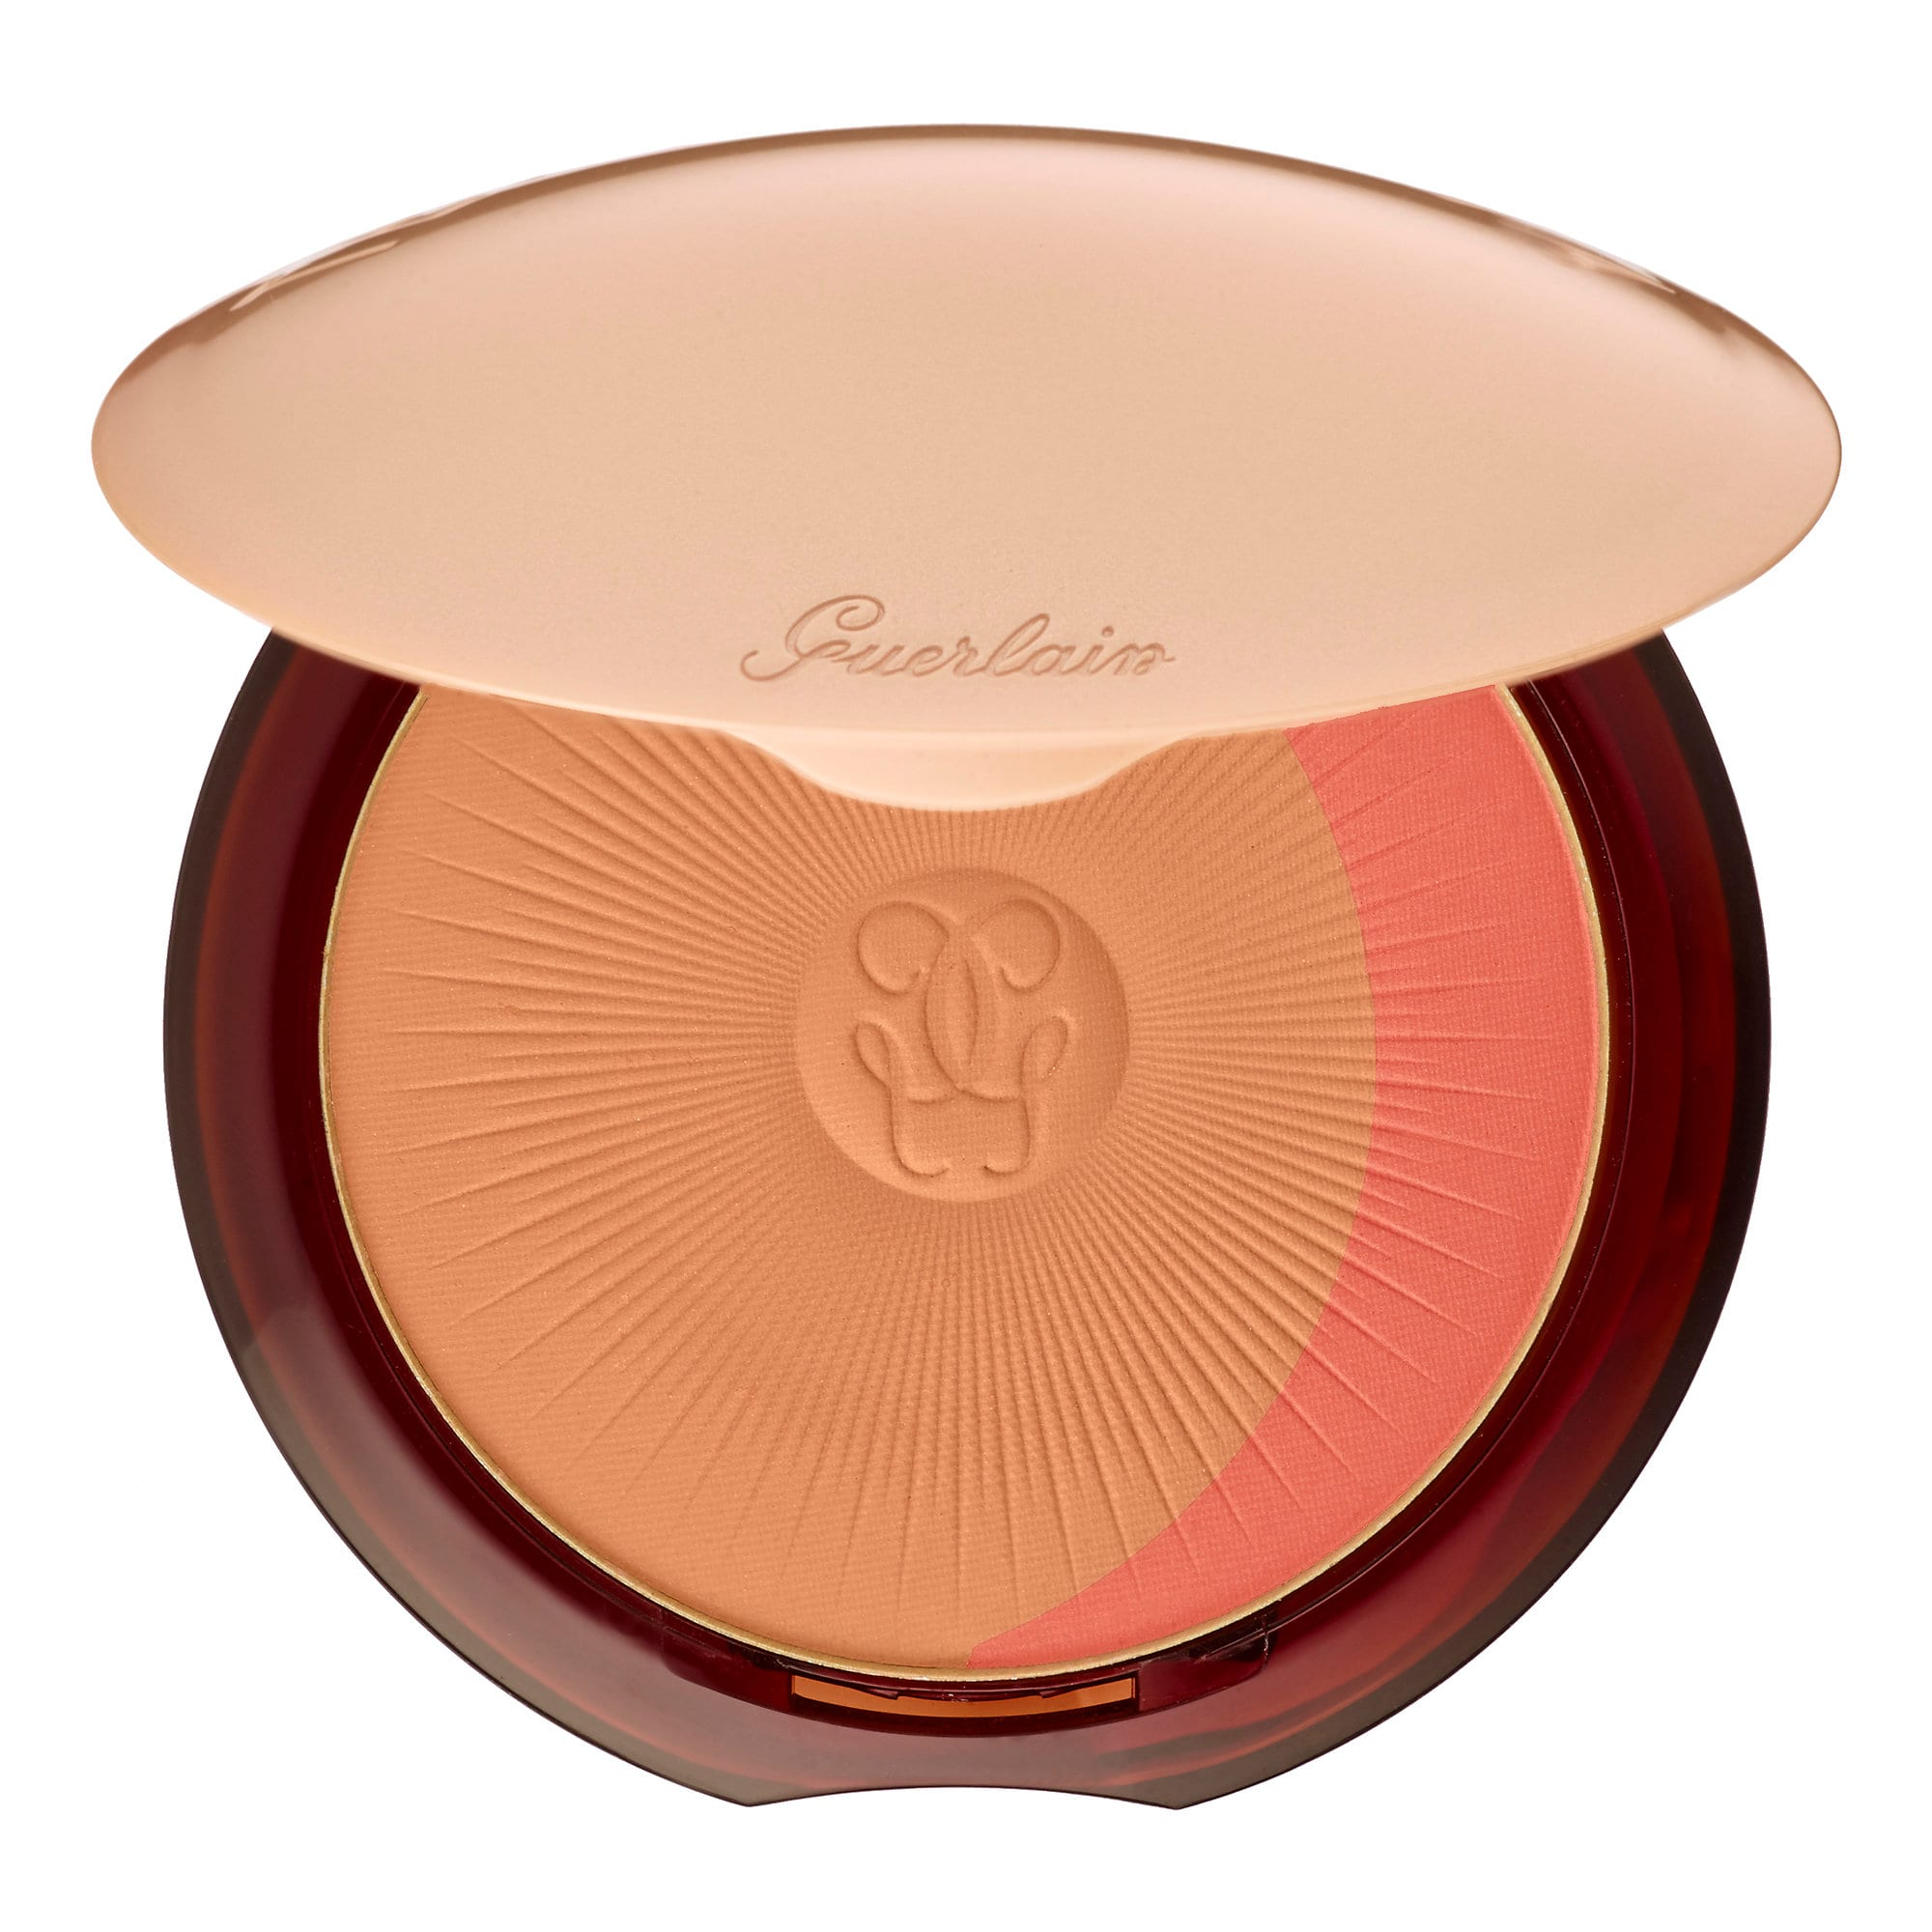 GUERLAIN-Terracotta-Healthy-Glow-Blush-Bronzer-Powder-Duo-sun-kissed-blush-blonde